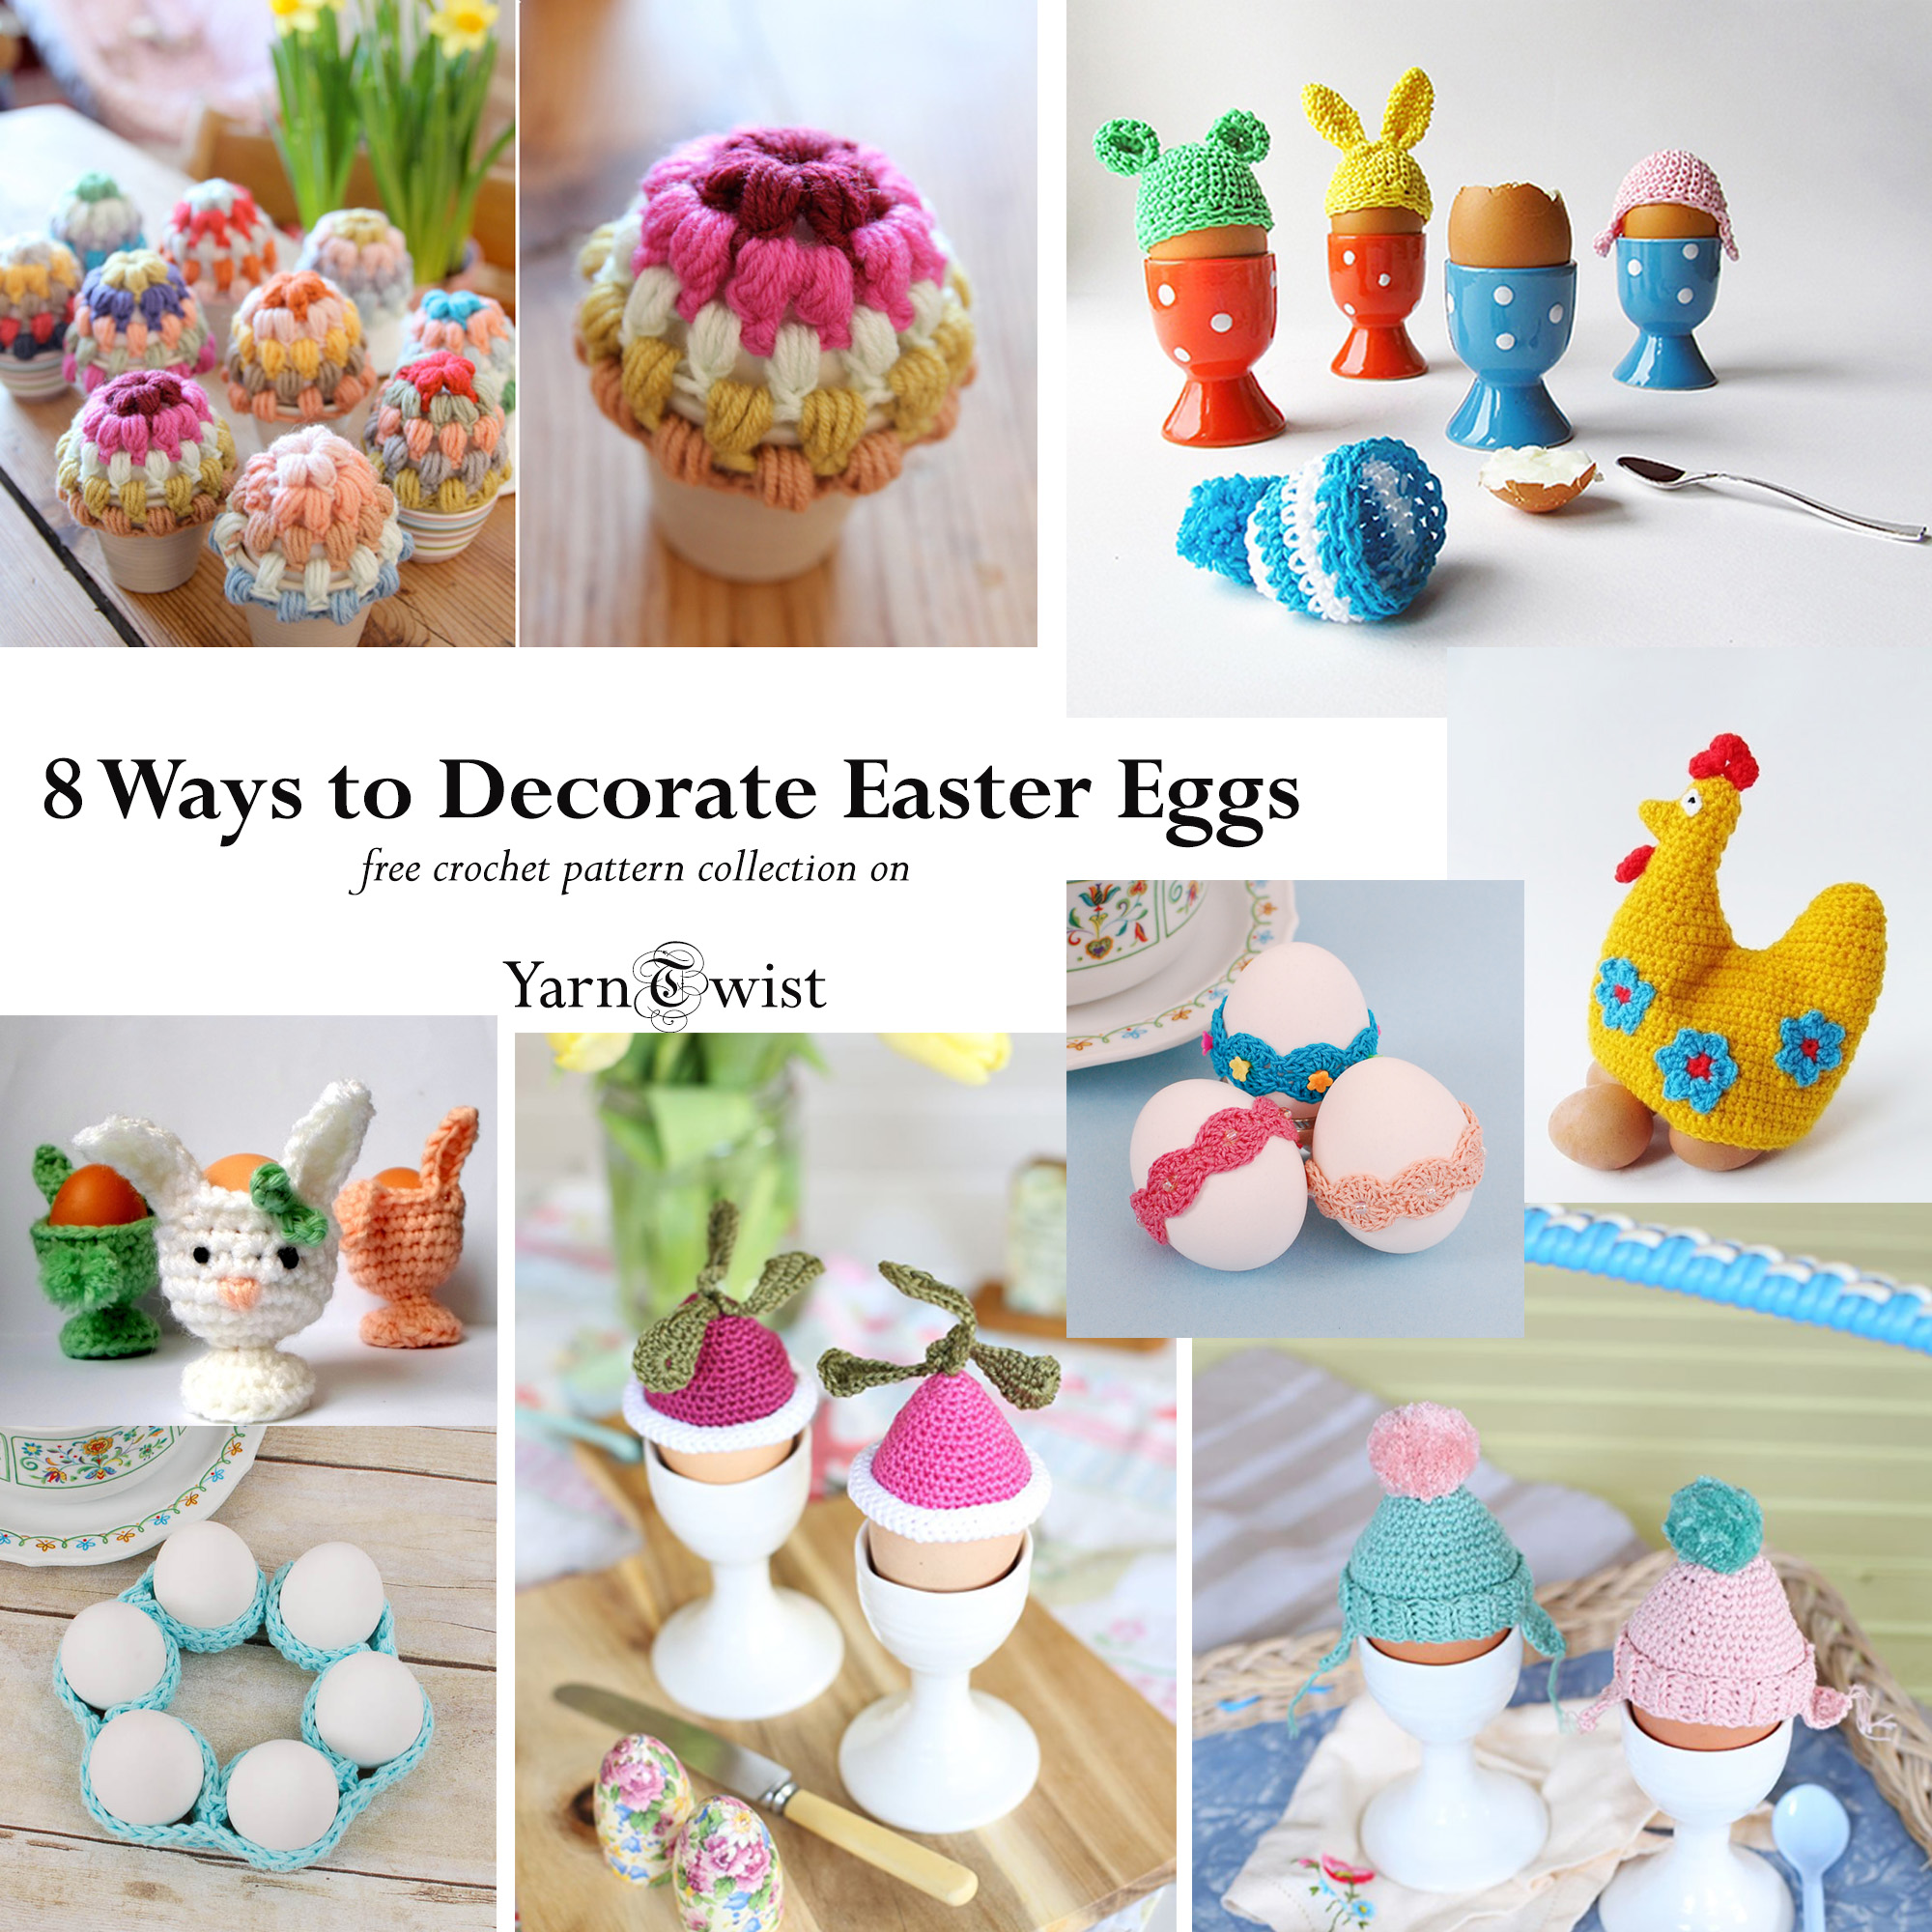 8 Ways to Decorate Easter Eggs with Crochet – Yarn Twist